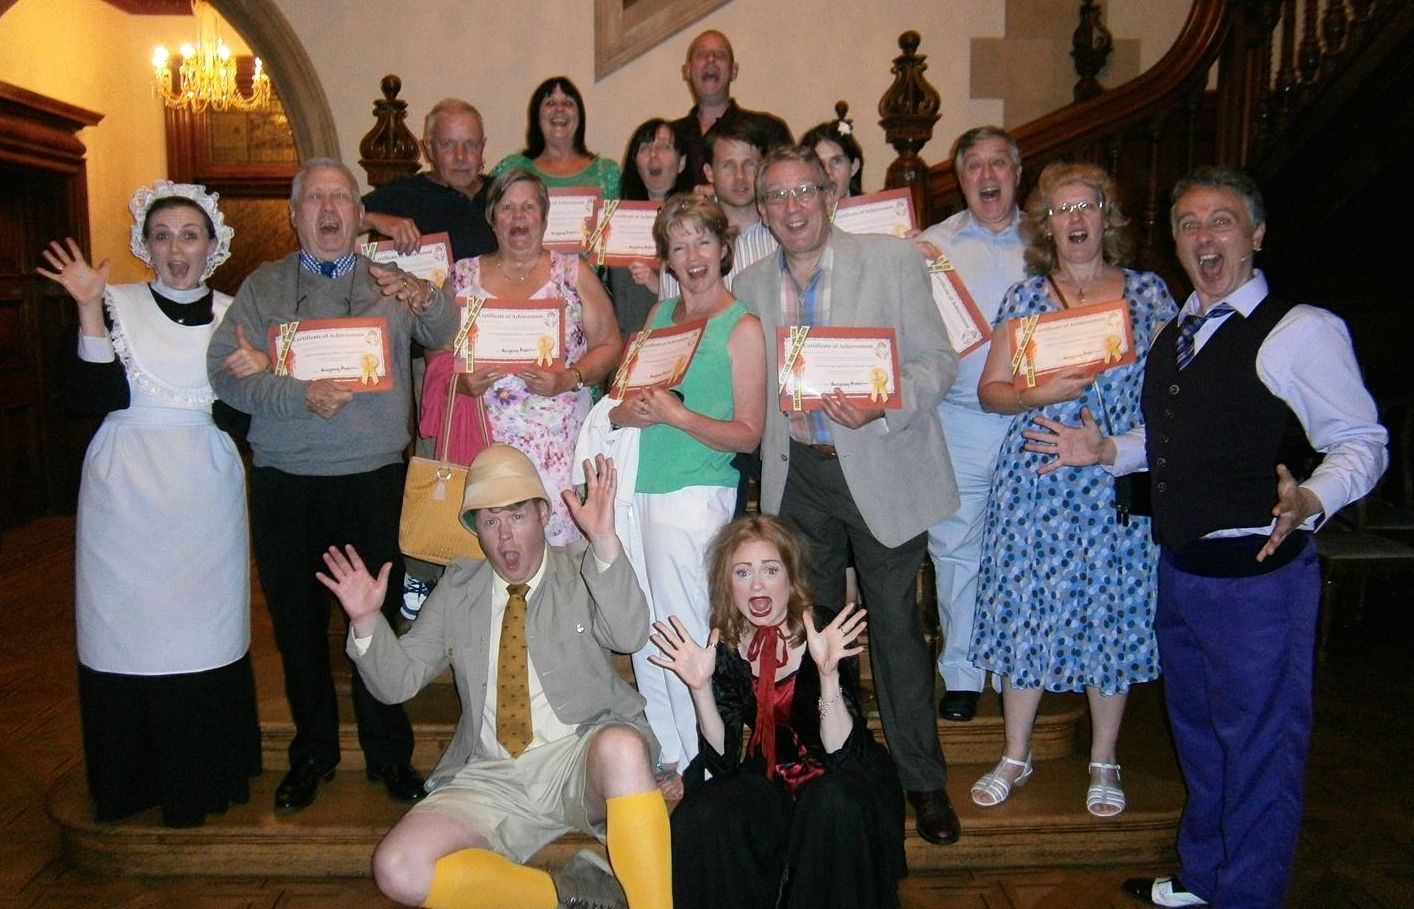 Murder Mystery at Pendley Manor Hotel with Moneypenny Productions June 2014